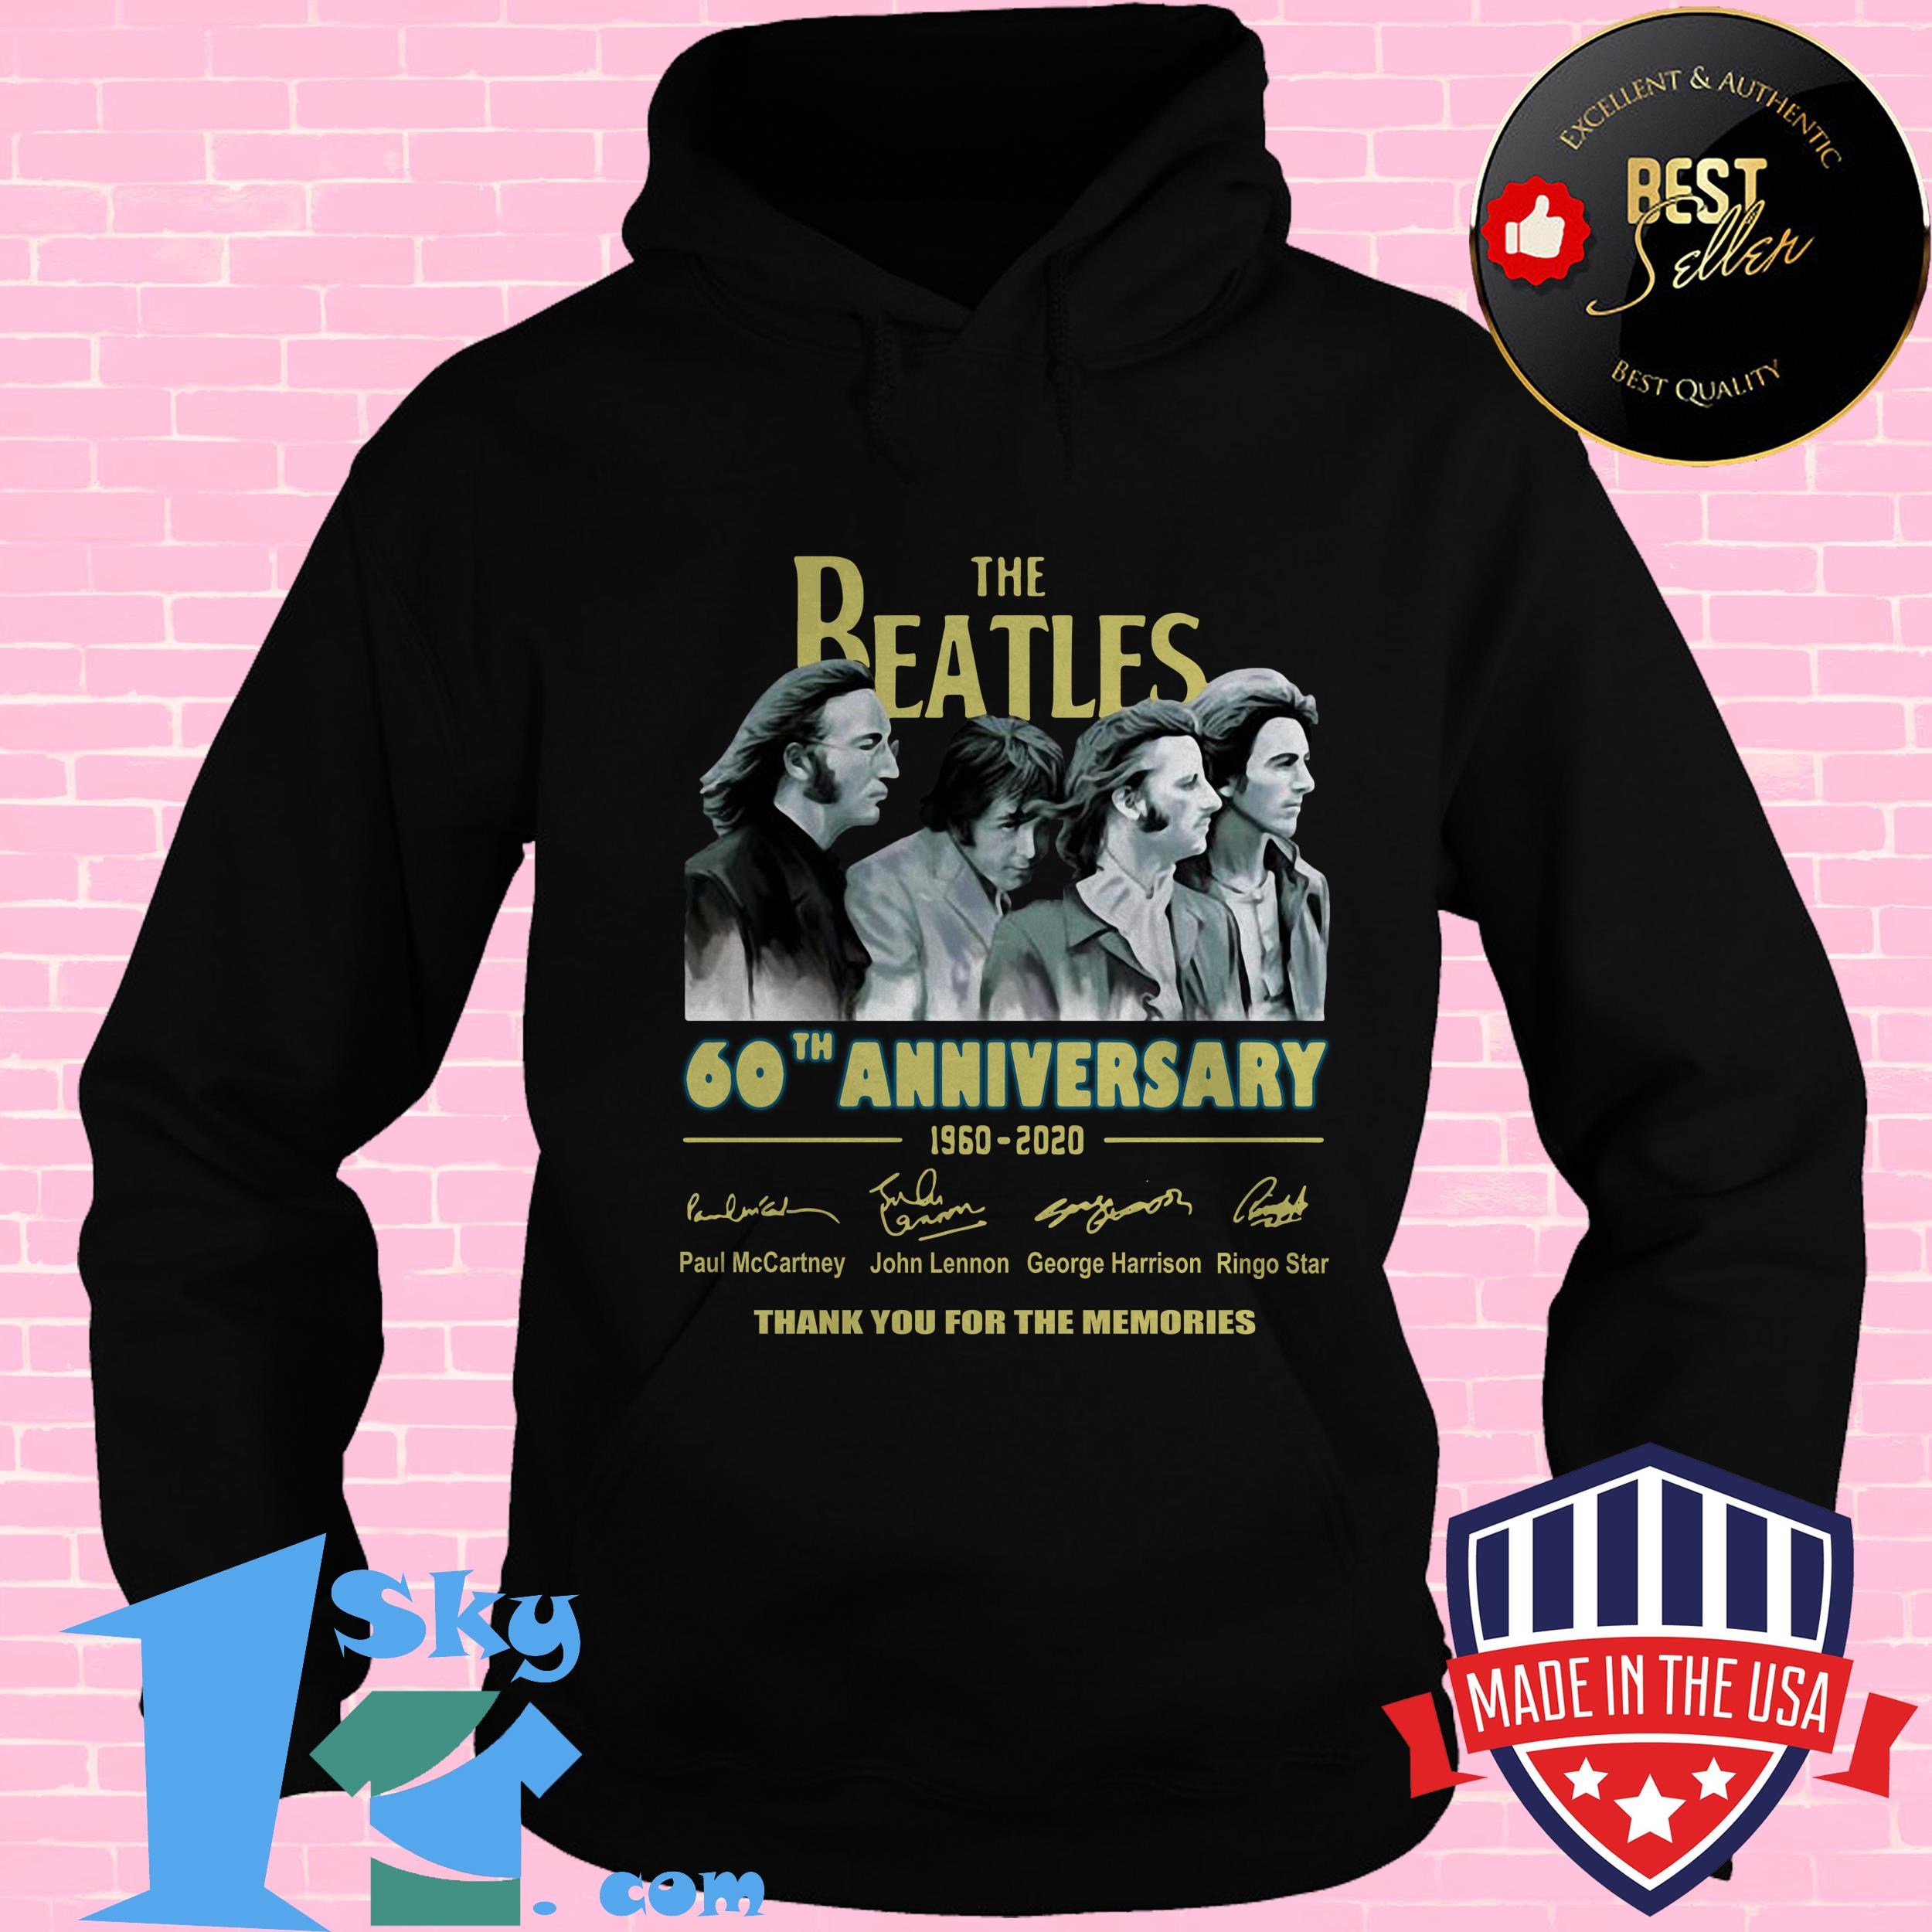 the beatles 60th anniversary 1960 2020 memories signature hoodie - The Beatles 60th Anniversary 1960 2020 Memories Signature shirt